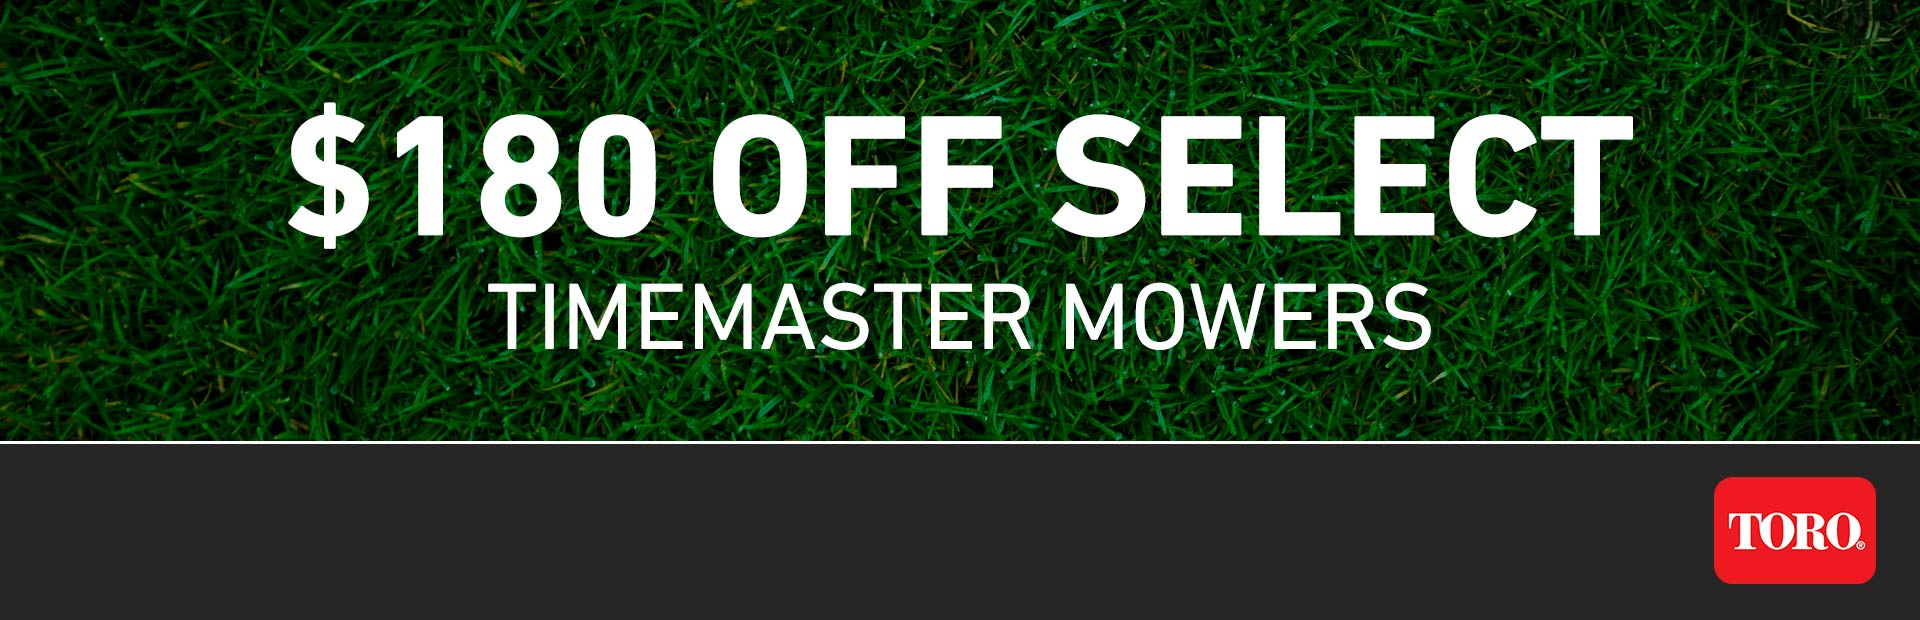 Toro: $180 CAD OFF Select TimeMaster Mowers